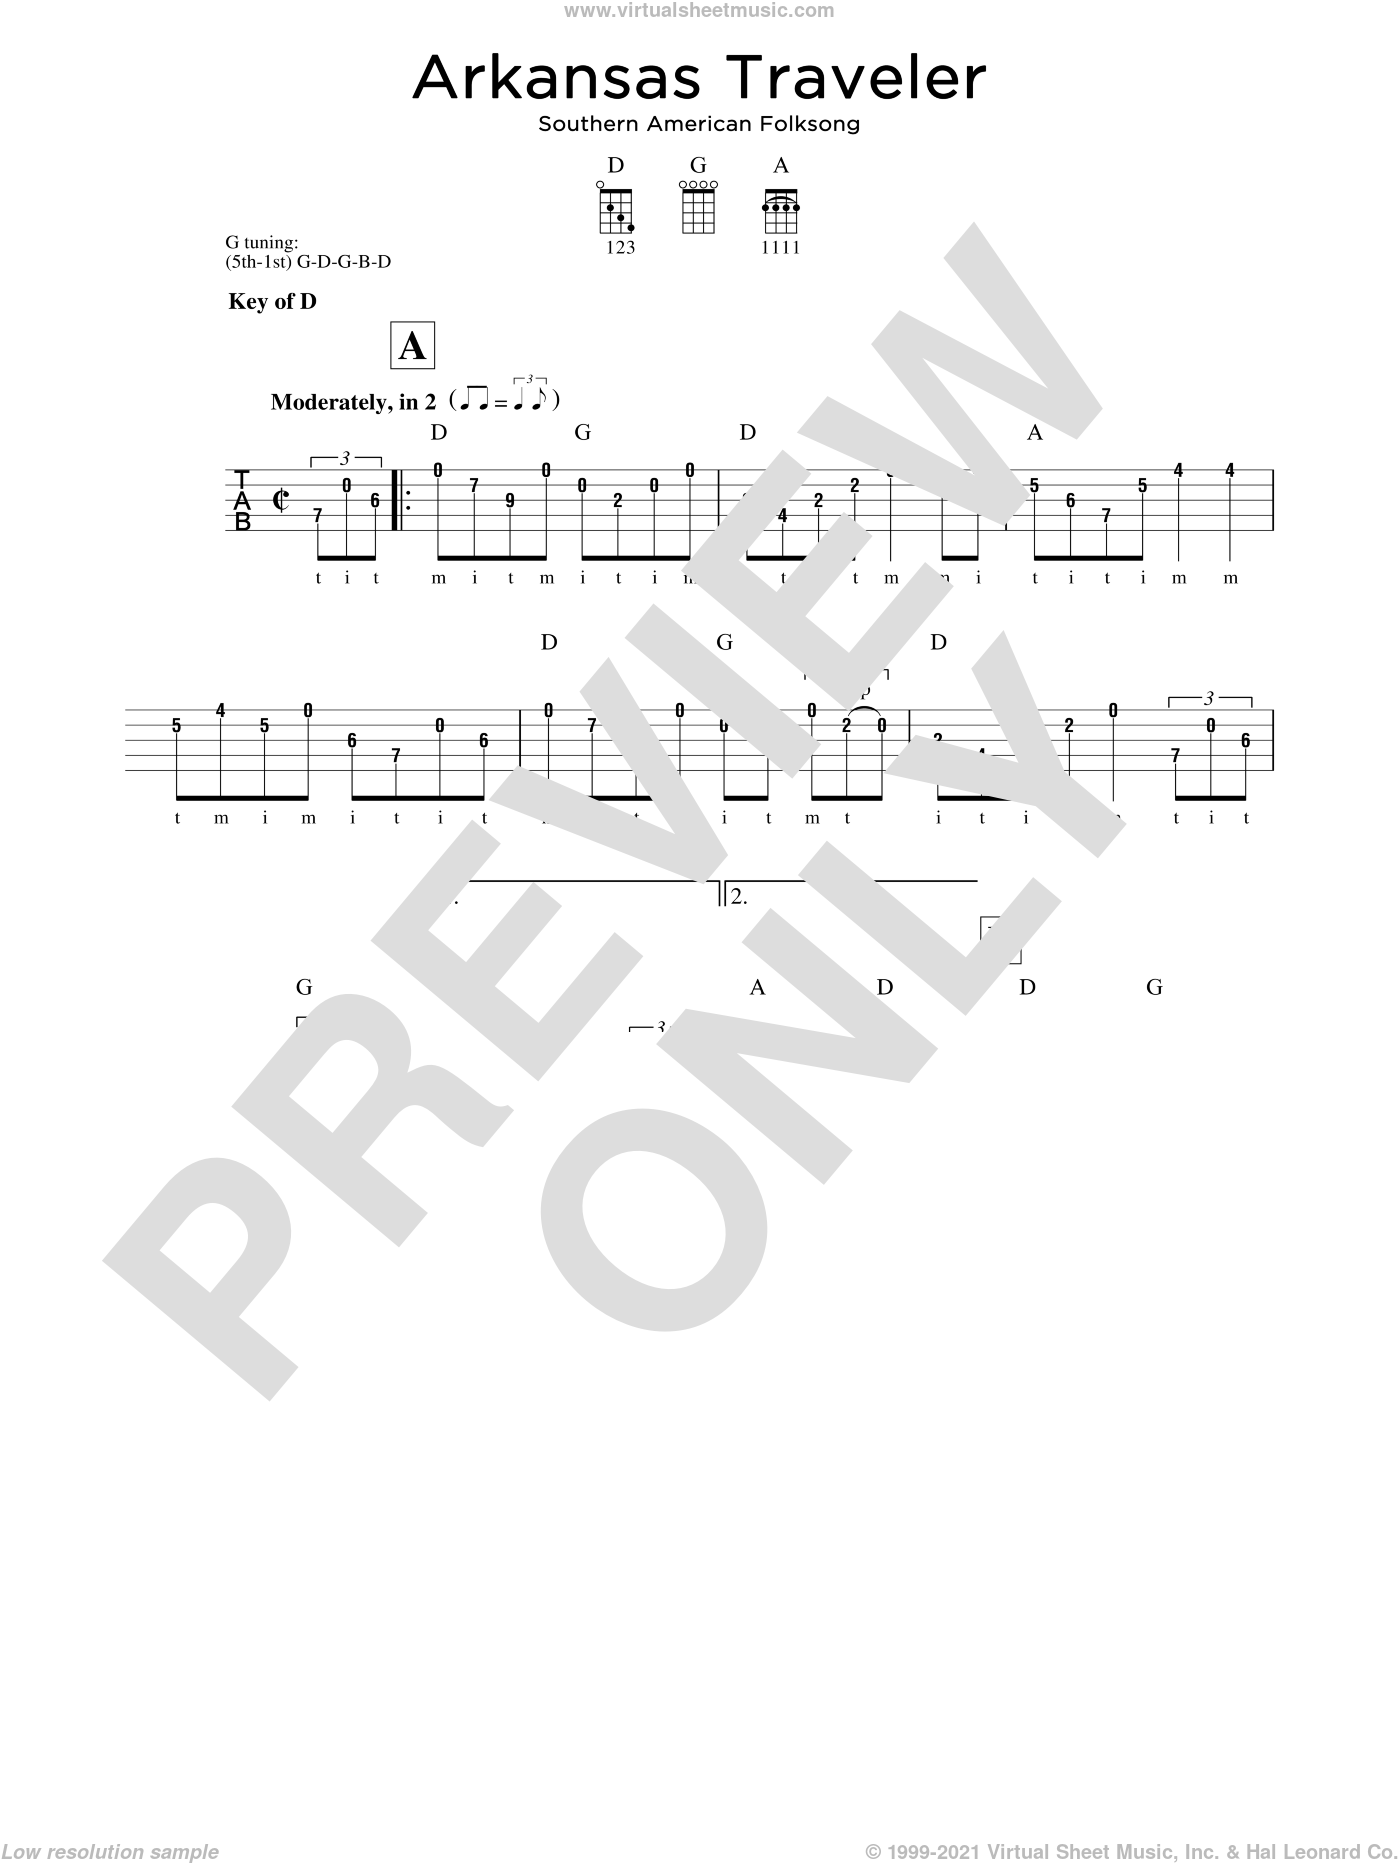 Arkansas Traveler sheet music for banjo solo, intermediate